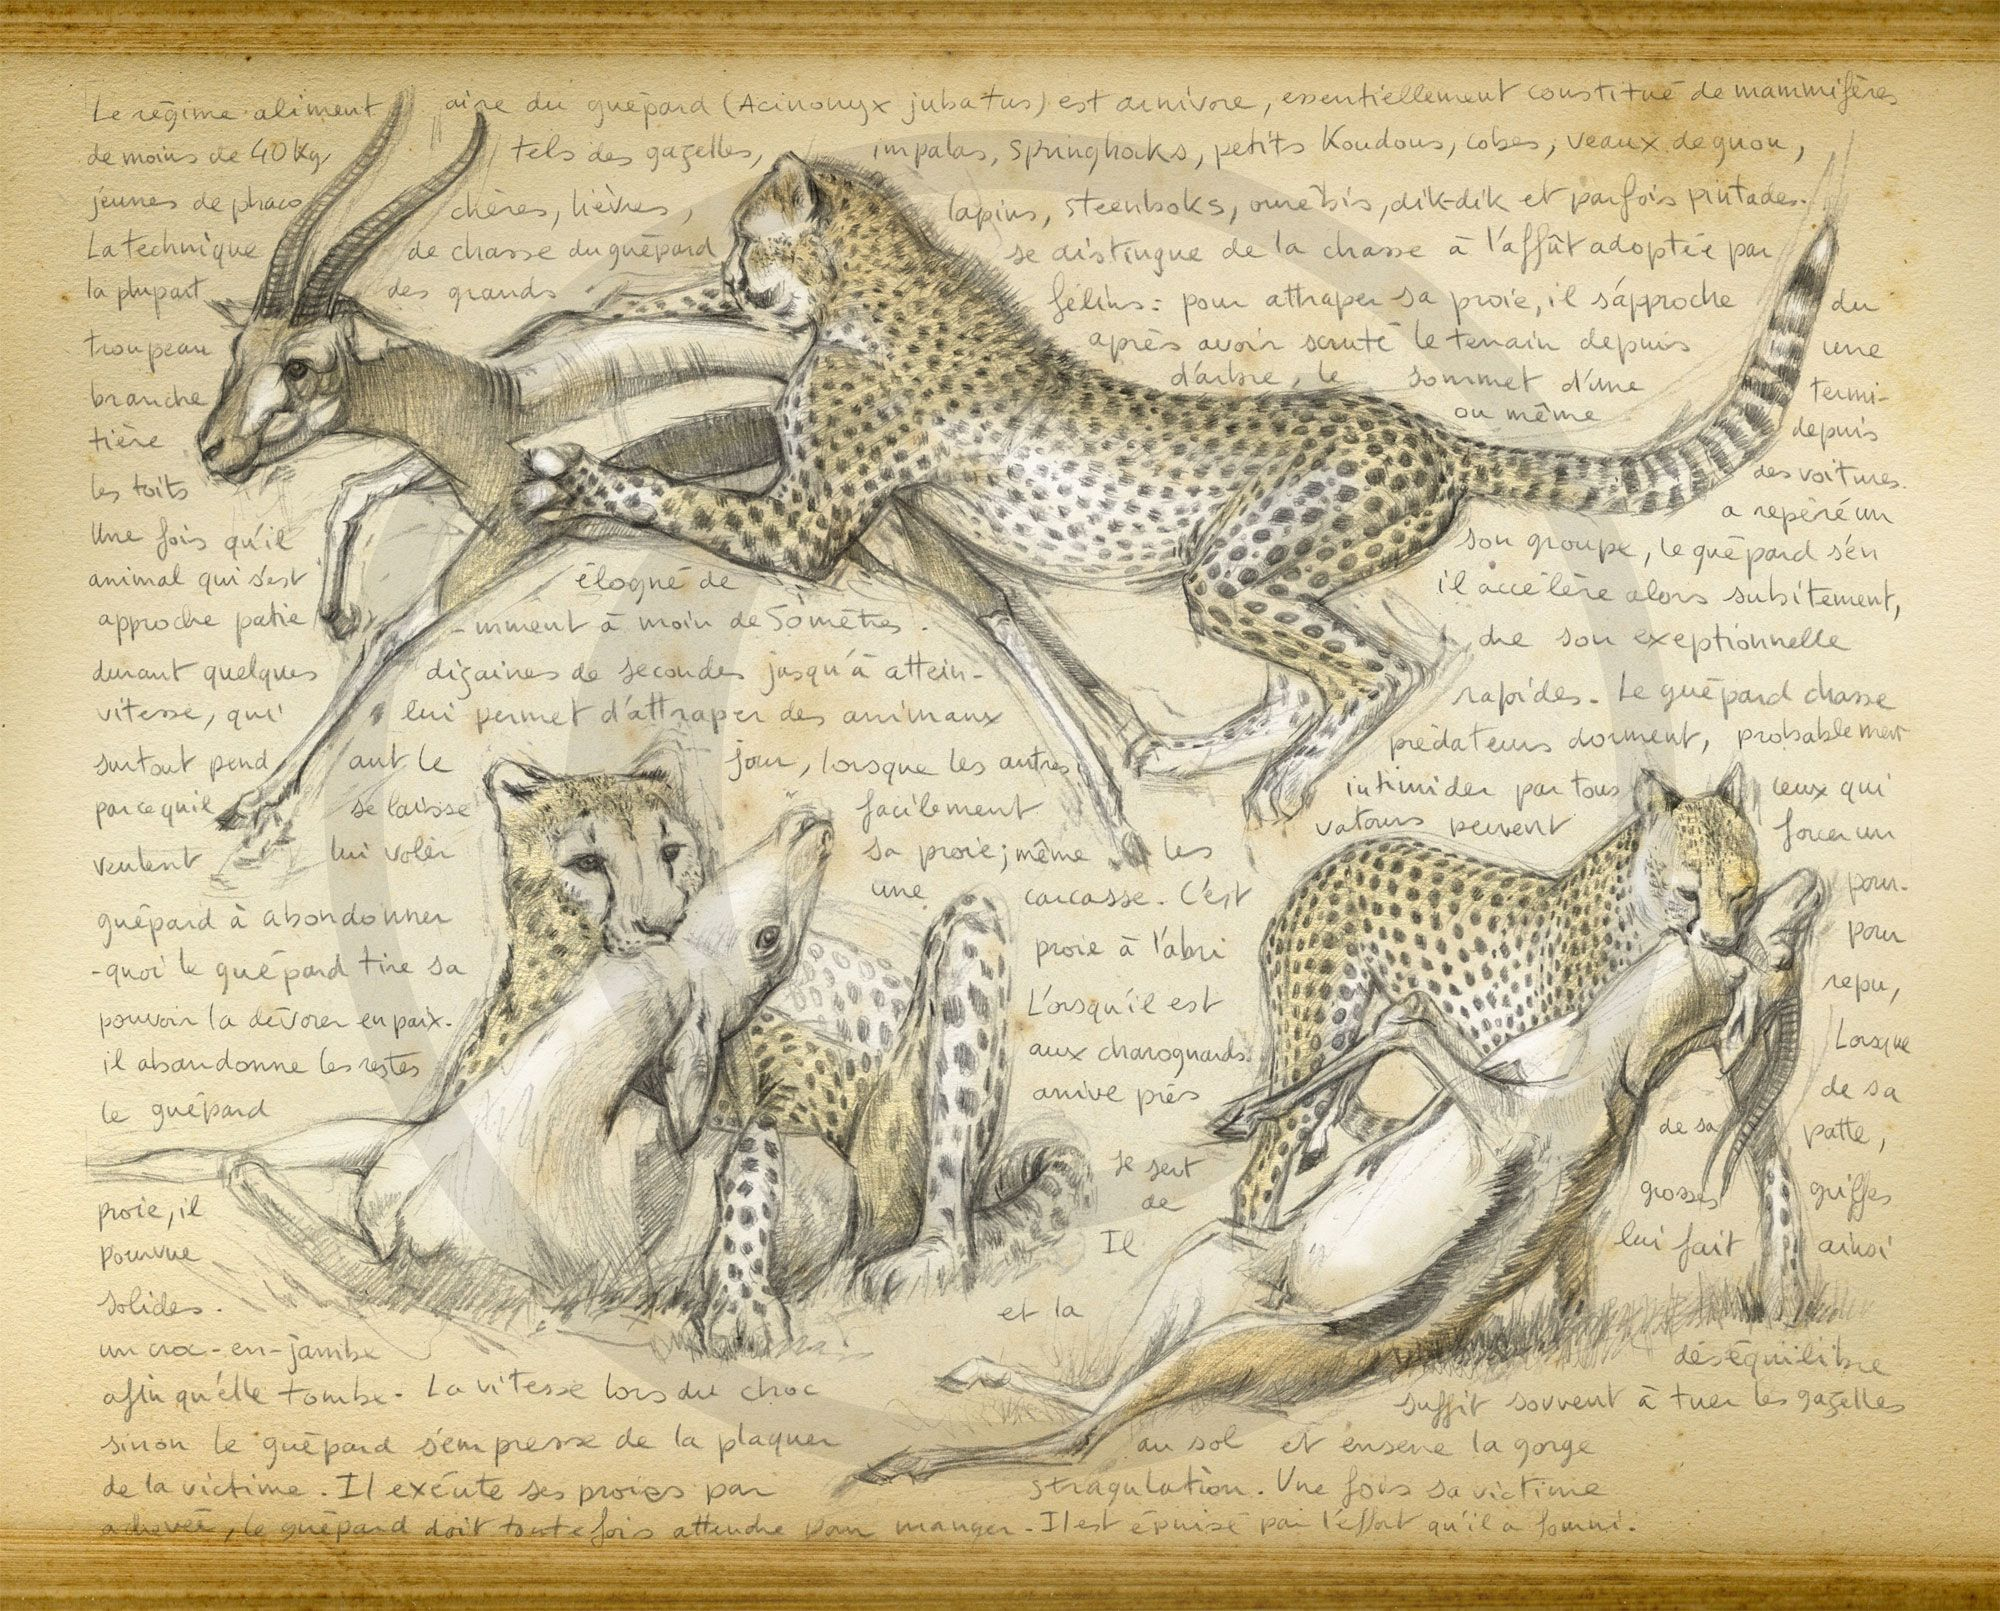 Oo Marcello Pettineo Oo< 216 - Guépard 7 | Croquis Animaux à Guépard Dessin